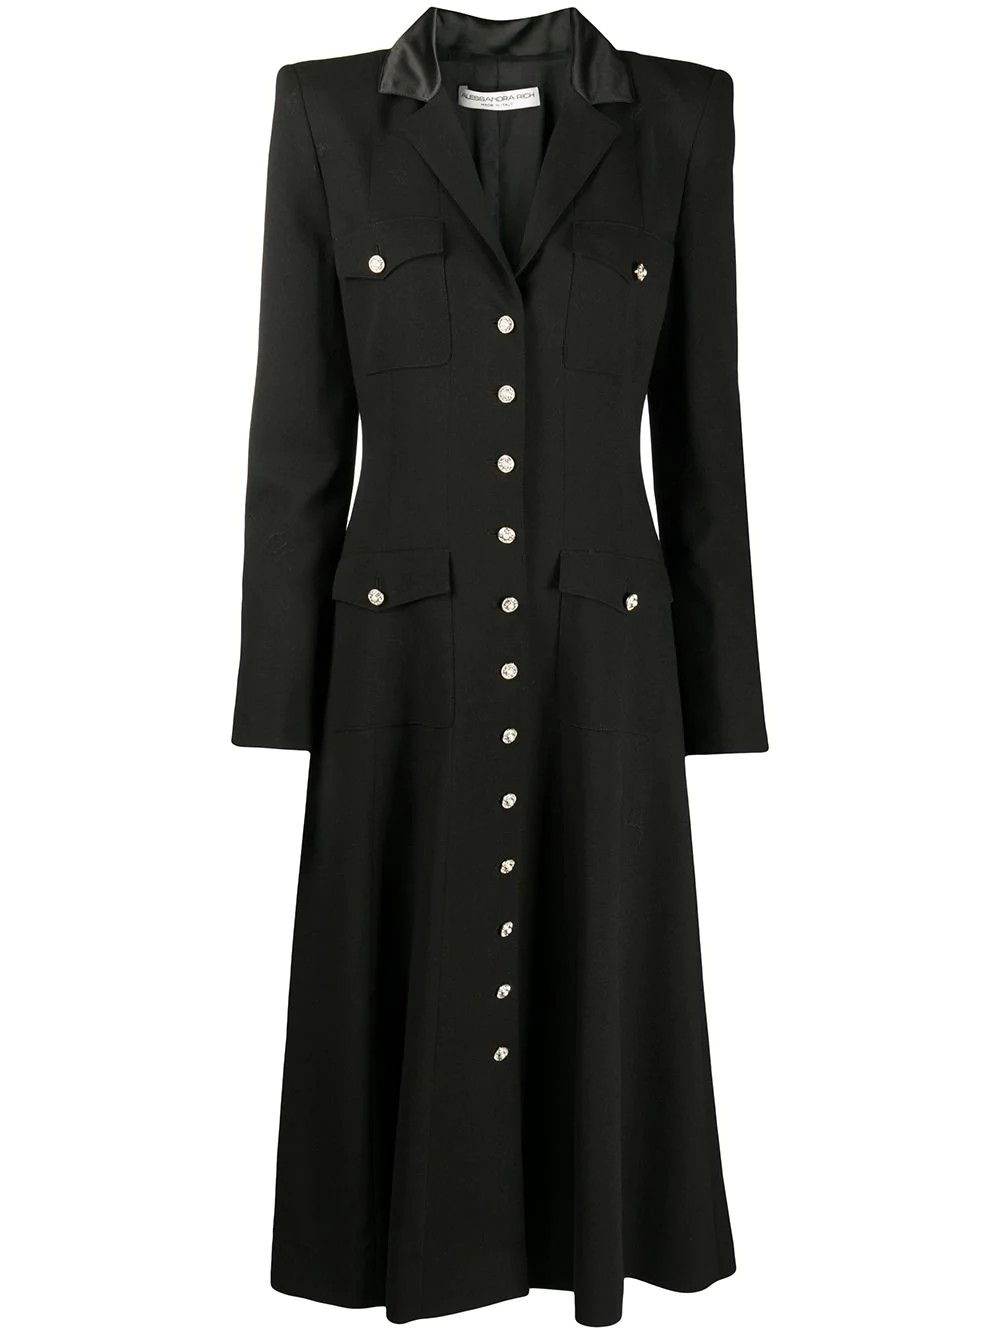 WOOL BUTTON FRONT DRESS WITH POCKETS